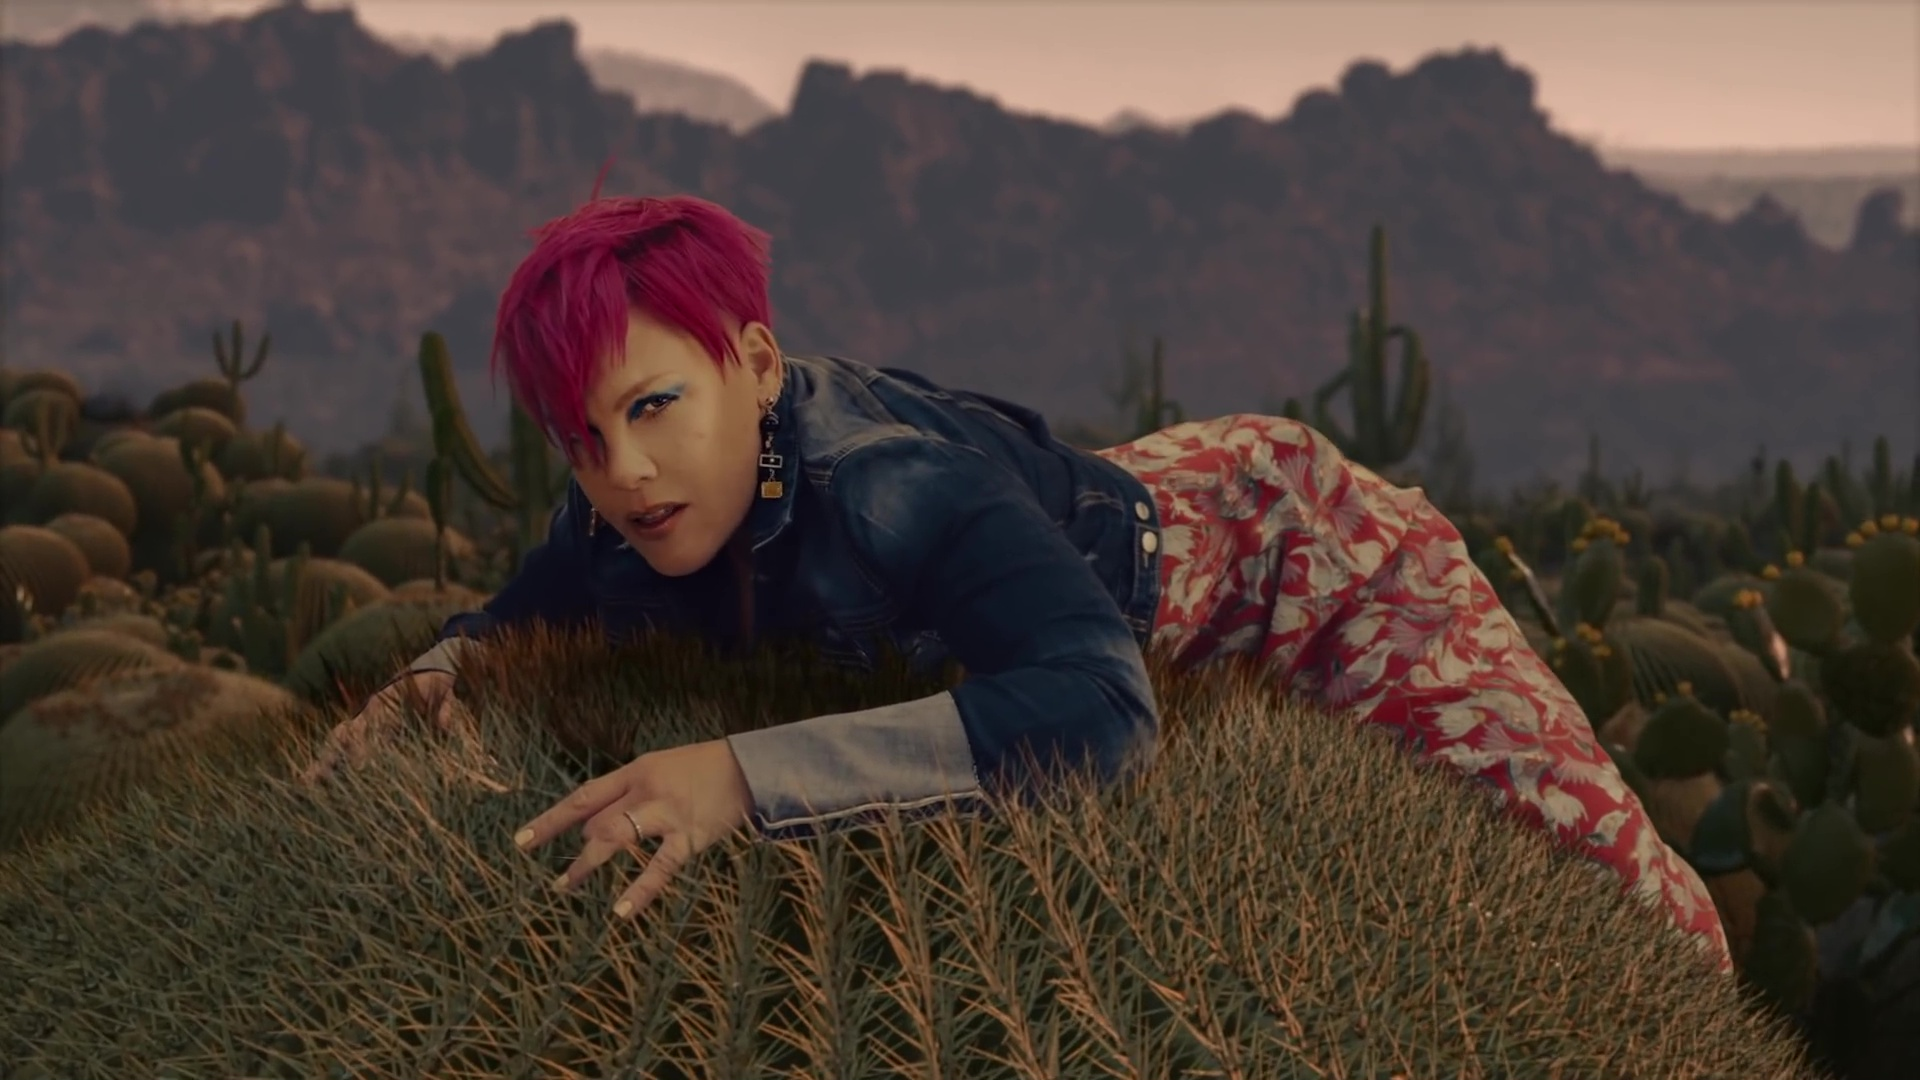 p!nk clip all i know so far willow hart sage